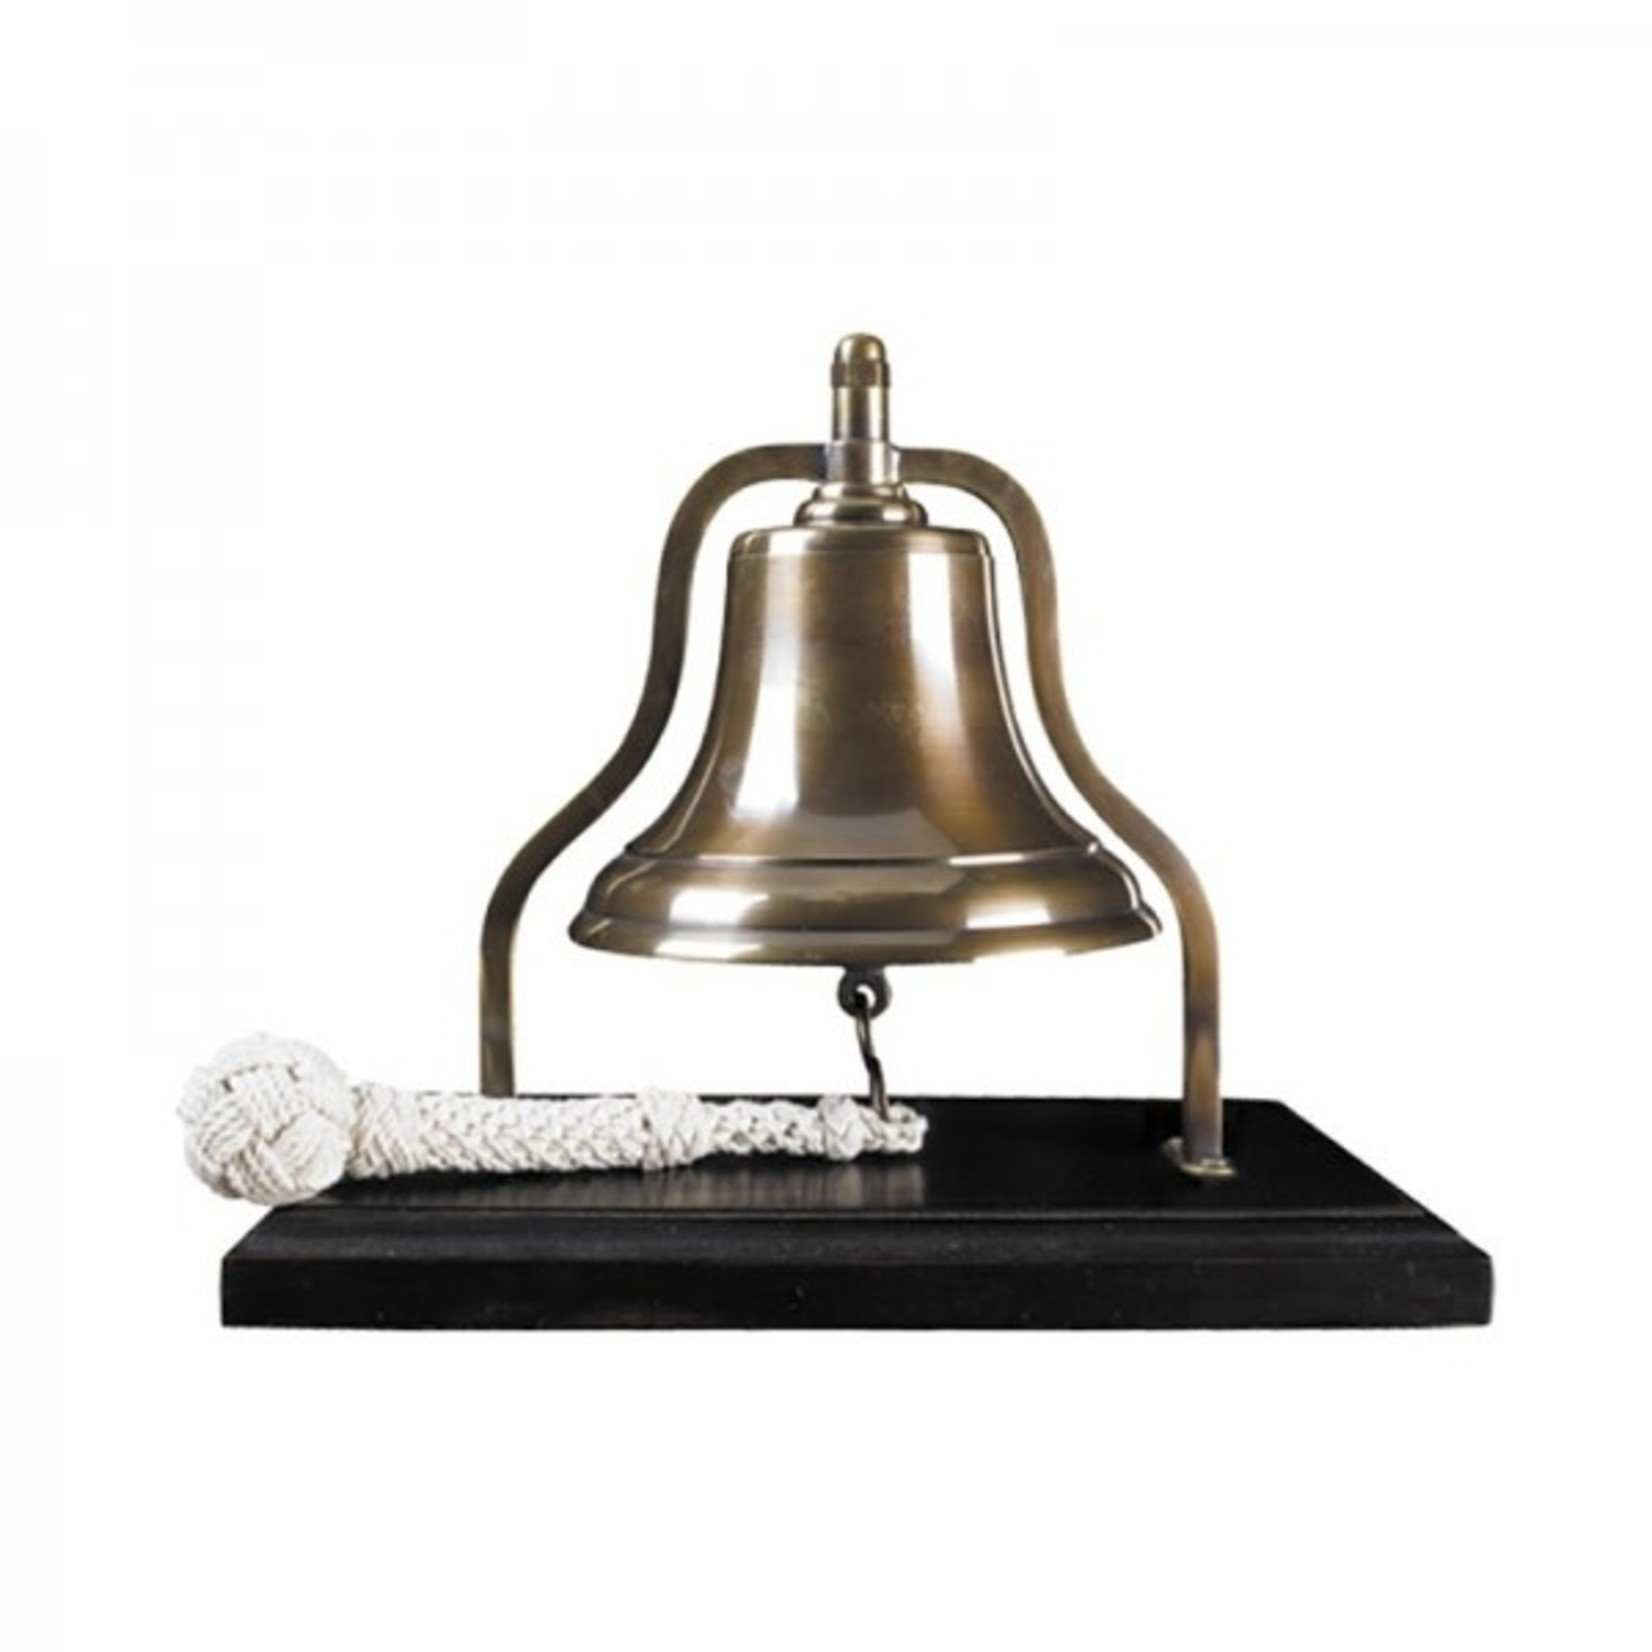 AUTHENTIC MODELS BELL PURSER , SILVER